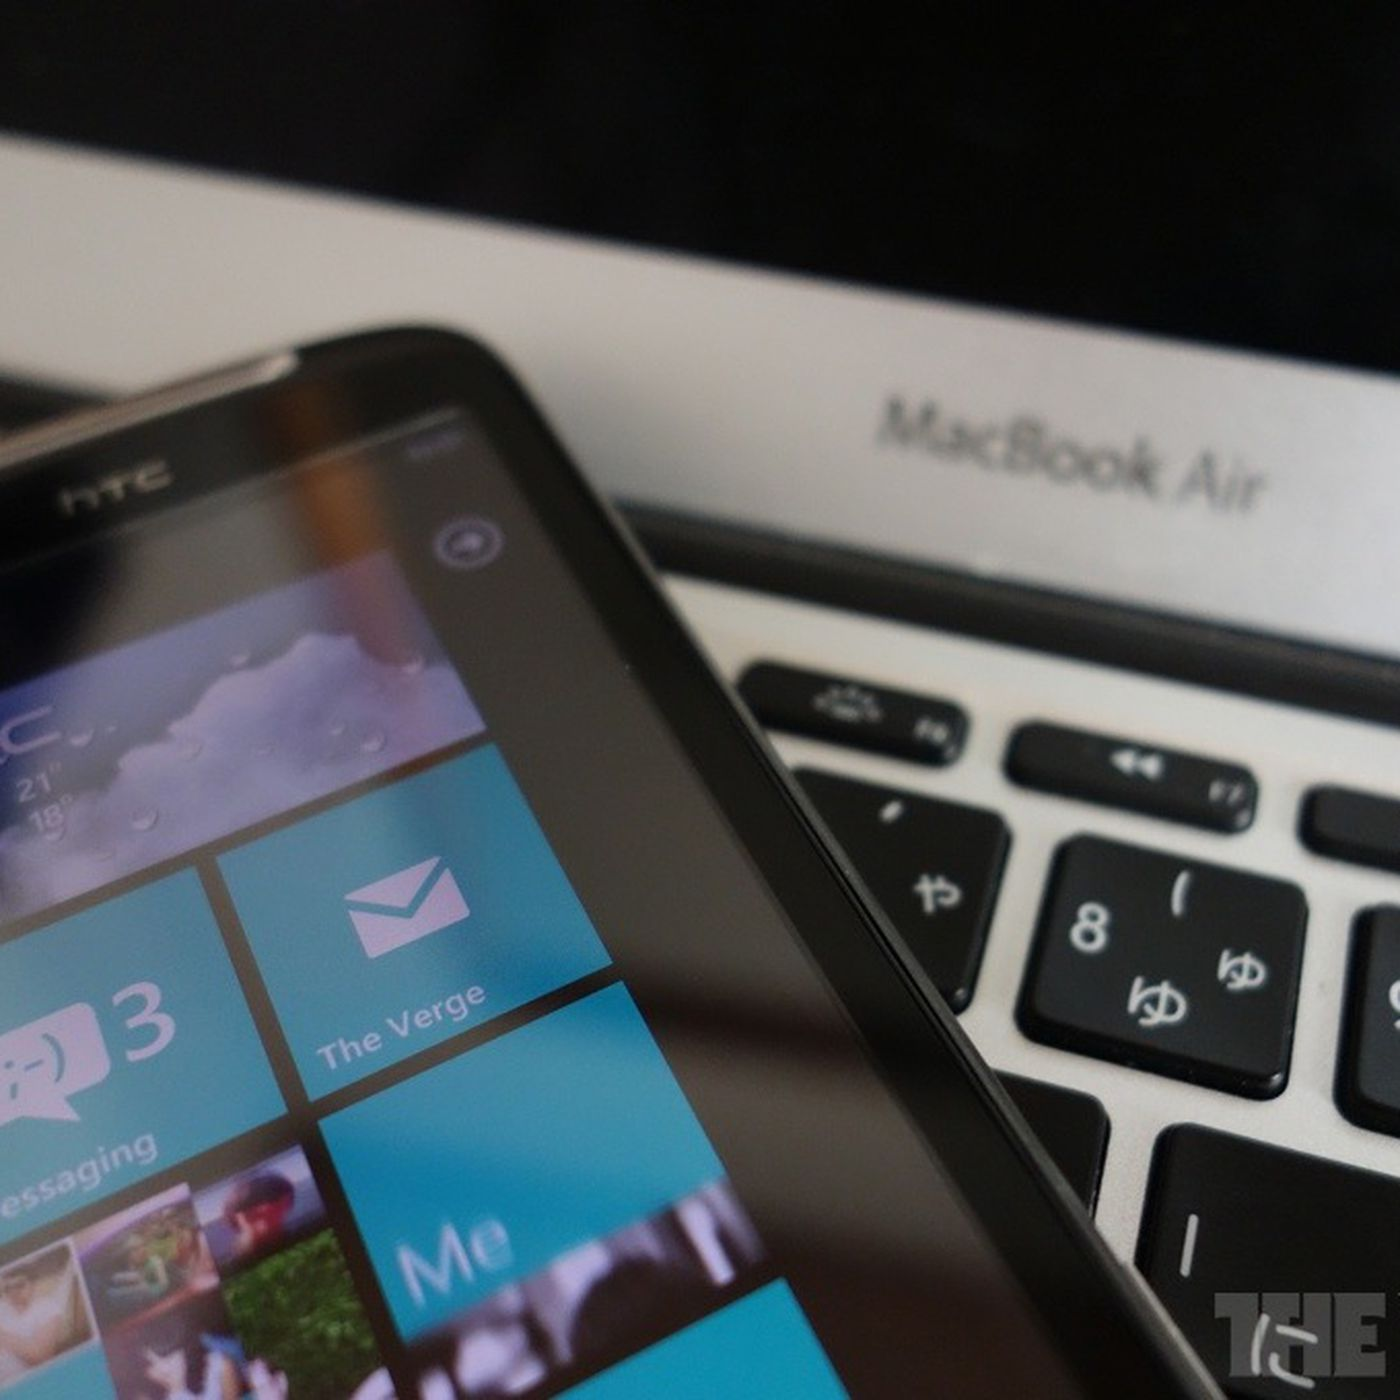 Microsoft Launches New Windows Phone 8 Syncing For Mac